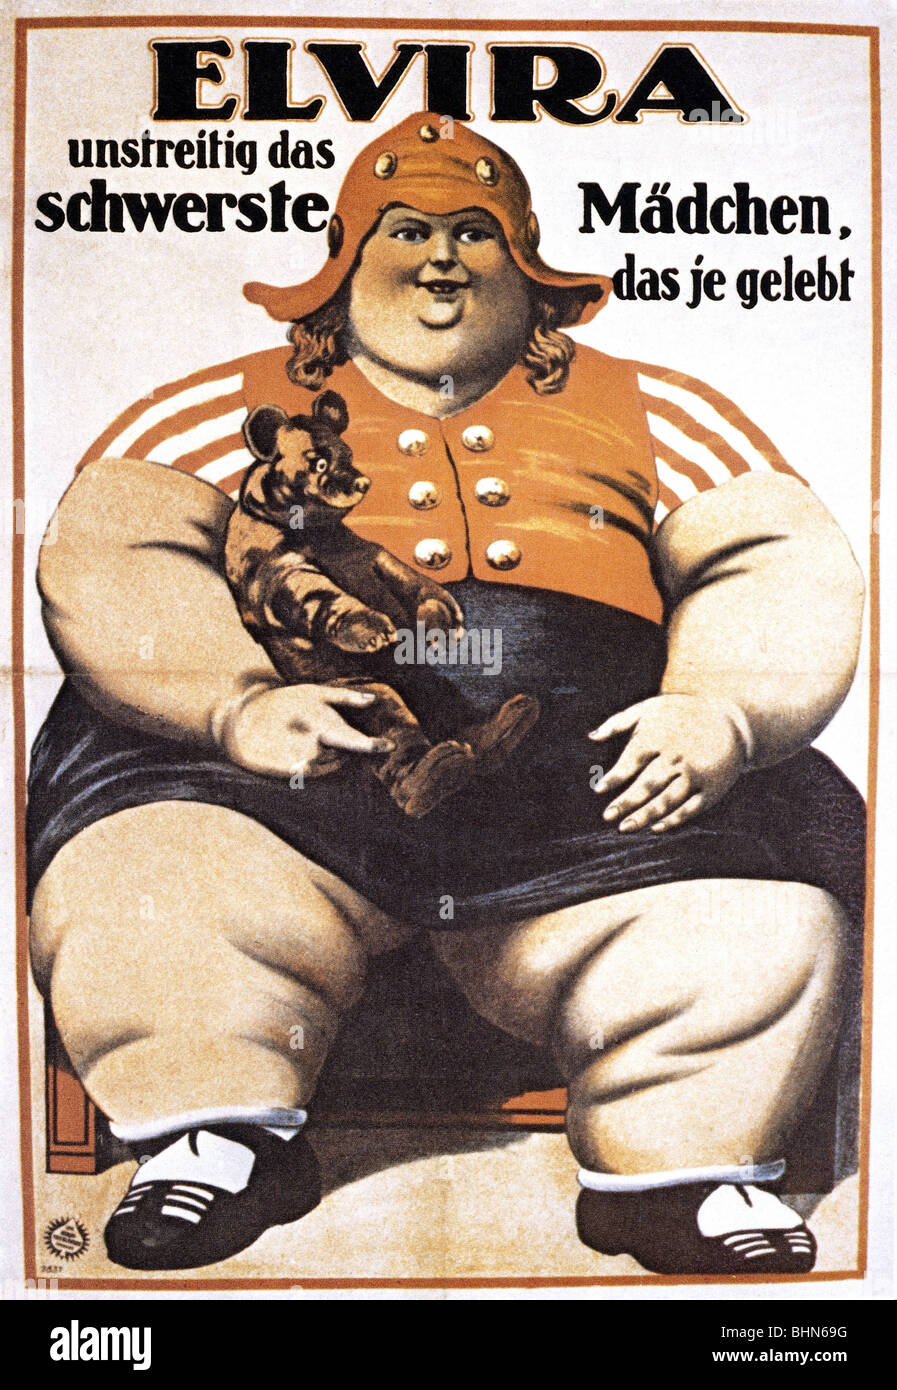 circus, curiosities, 'Elvira, without doubt the heaviest girl ever known', poster, circa 1900, Additional - Stock Image